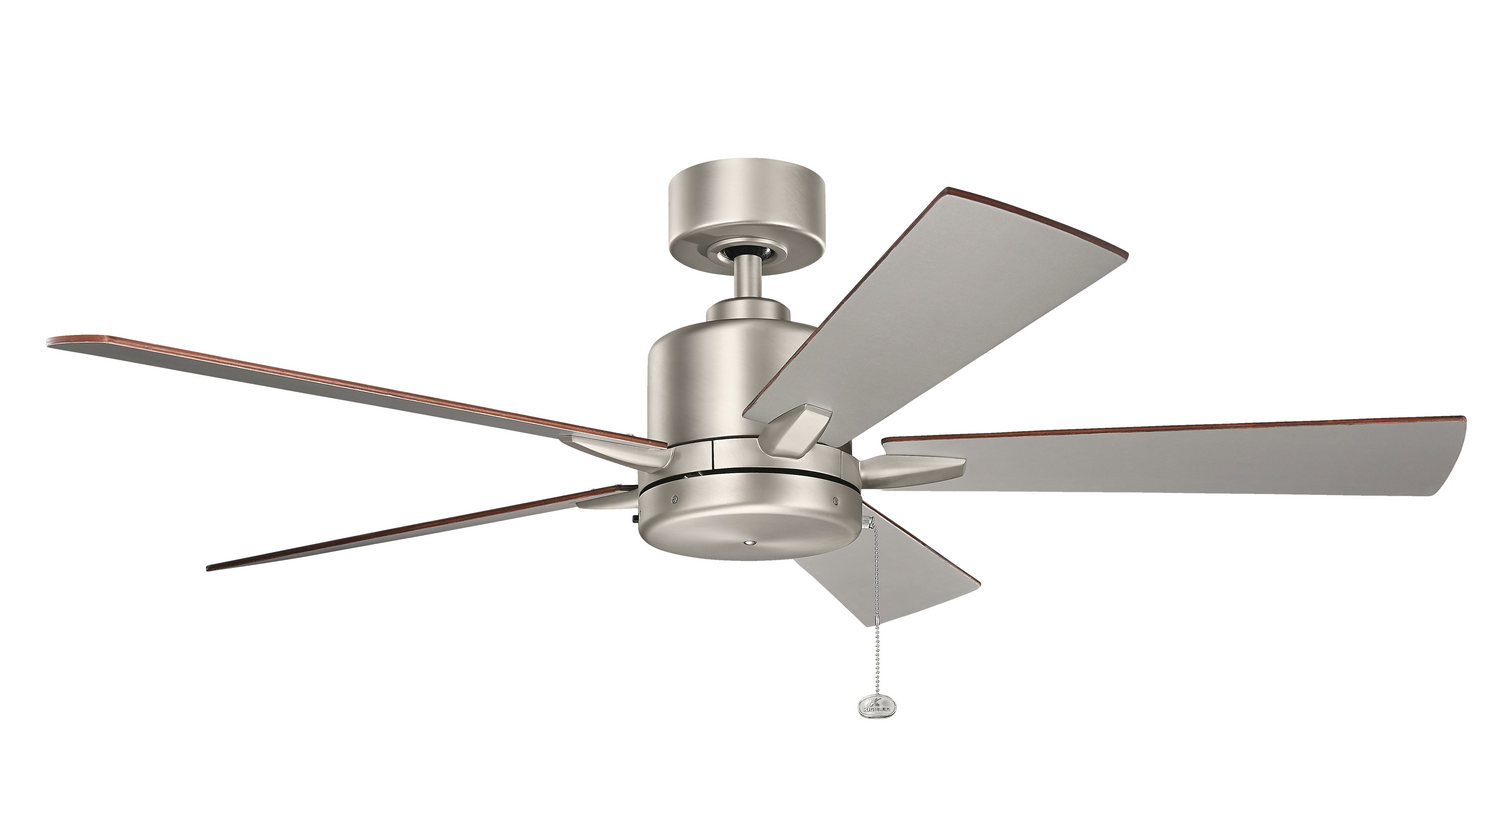 52 inchCeiling Fan from the Bowen collection by Kichler 330242NI